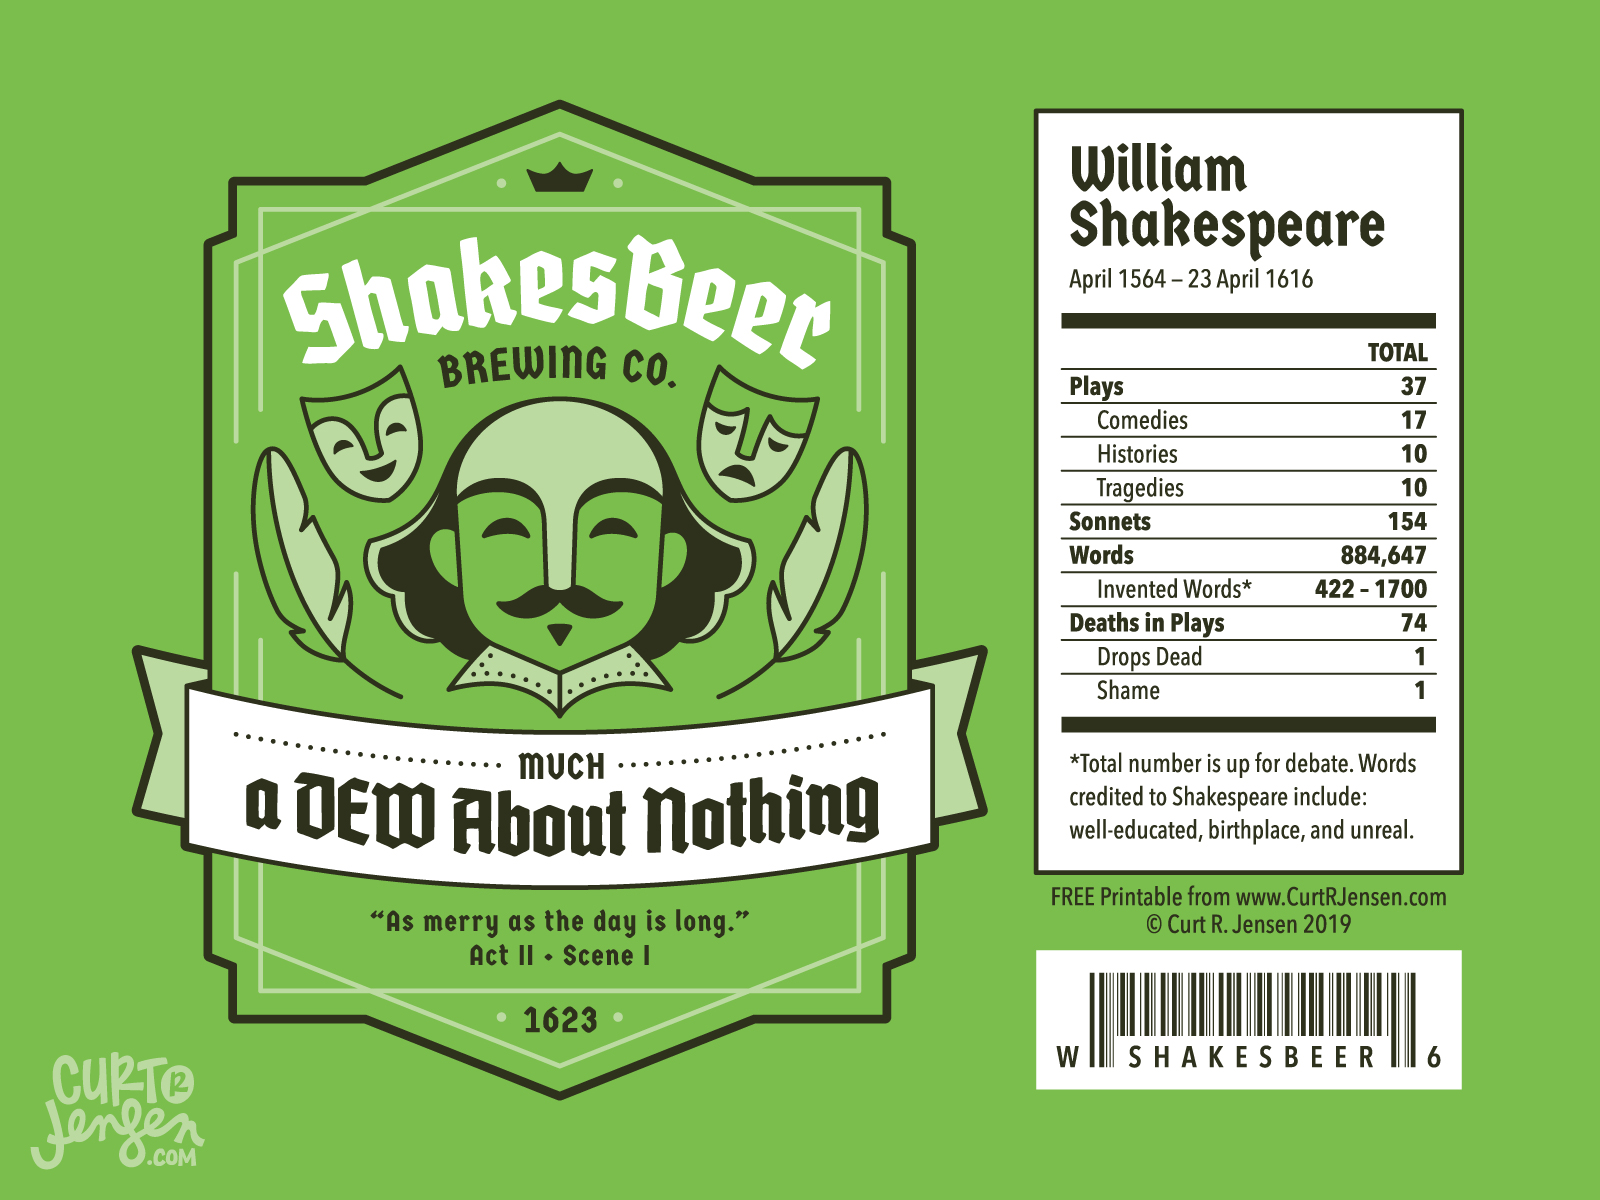 Much a Dew About Nothing - ShakesBeer Brewing Co.